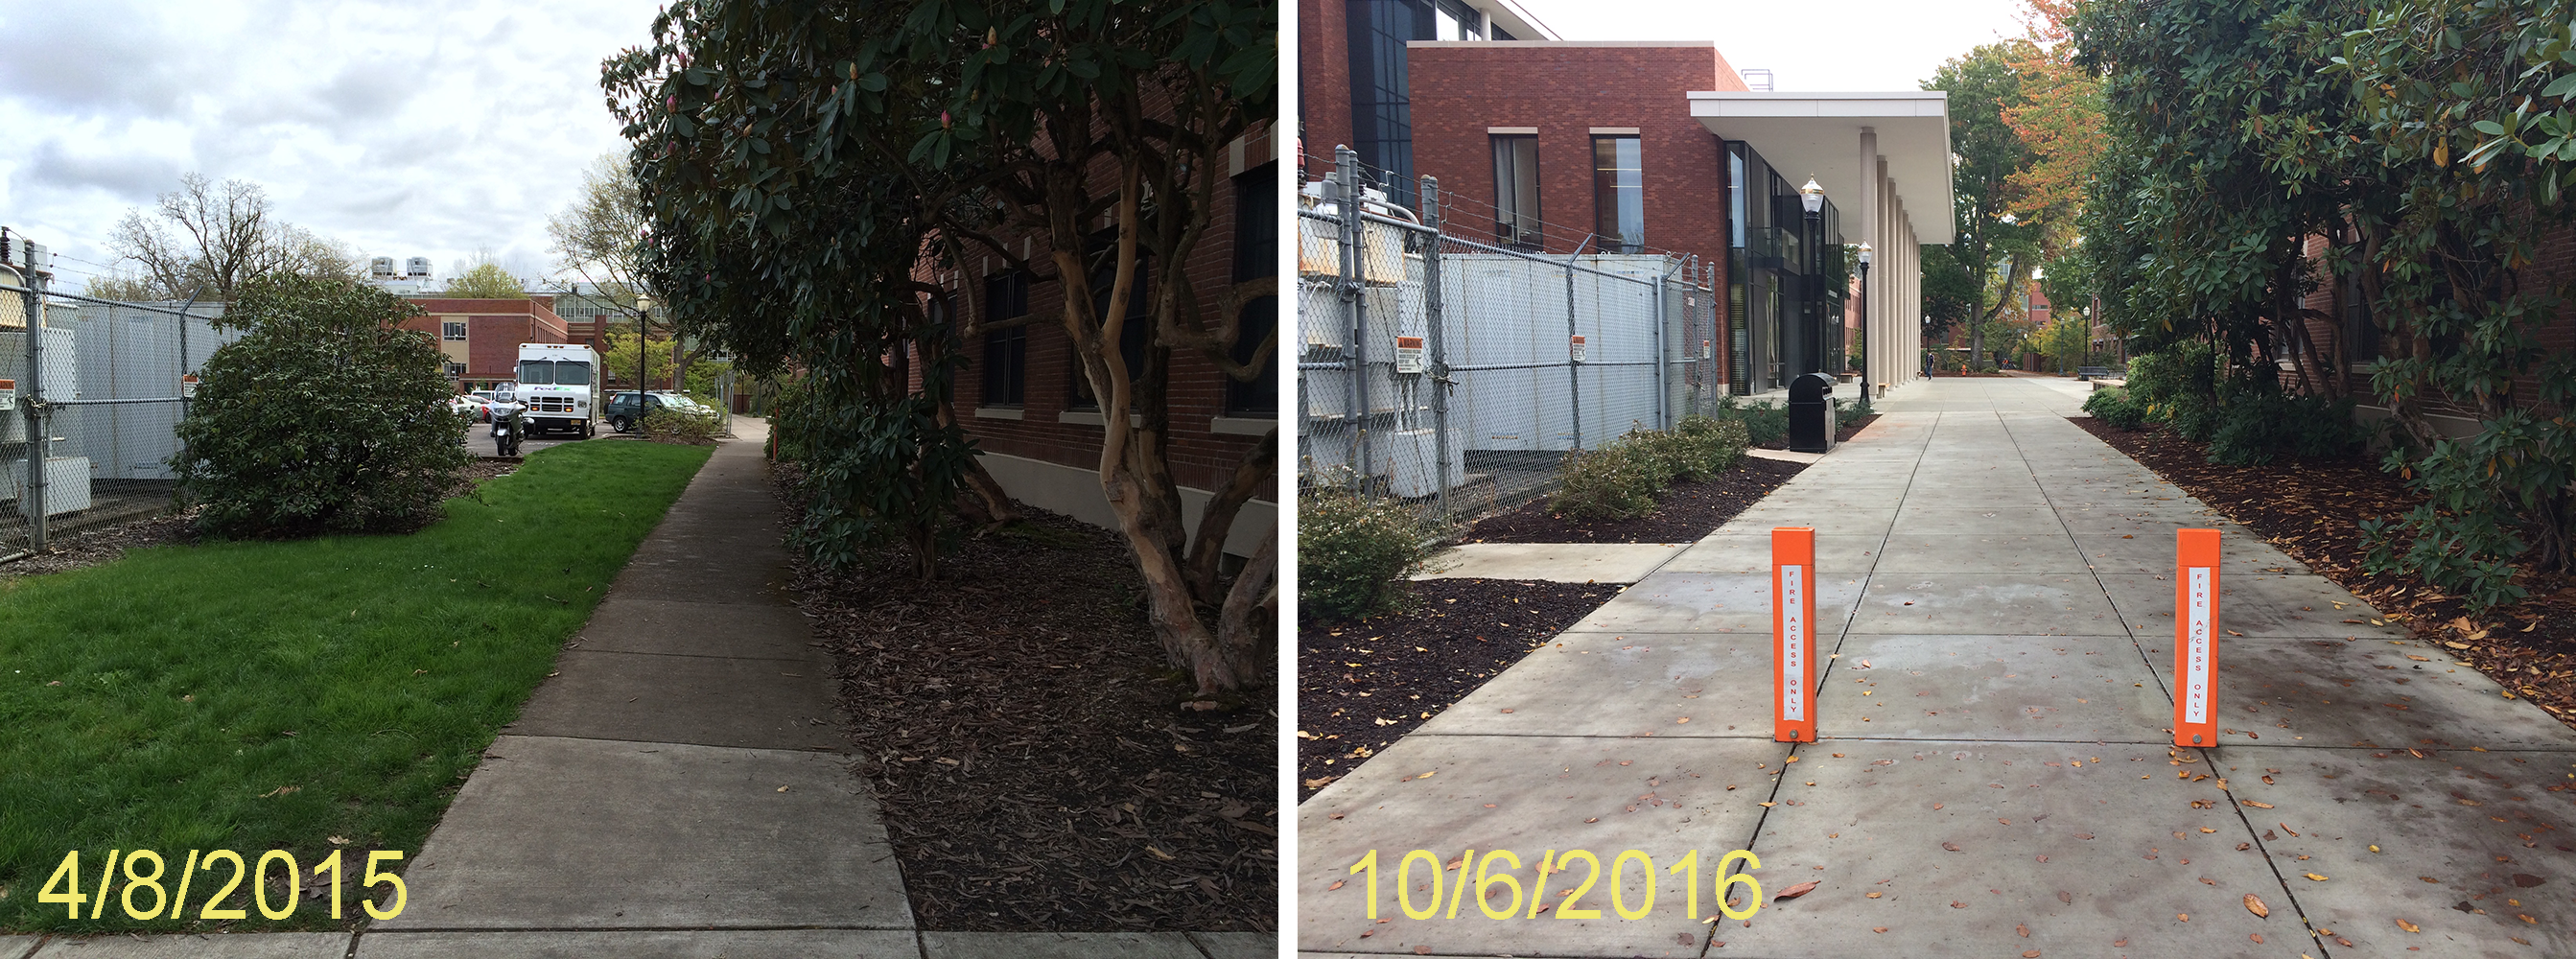 Johnson Hall pathway from 26th before and after